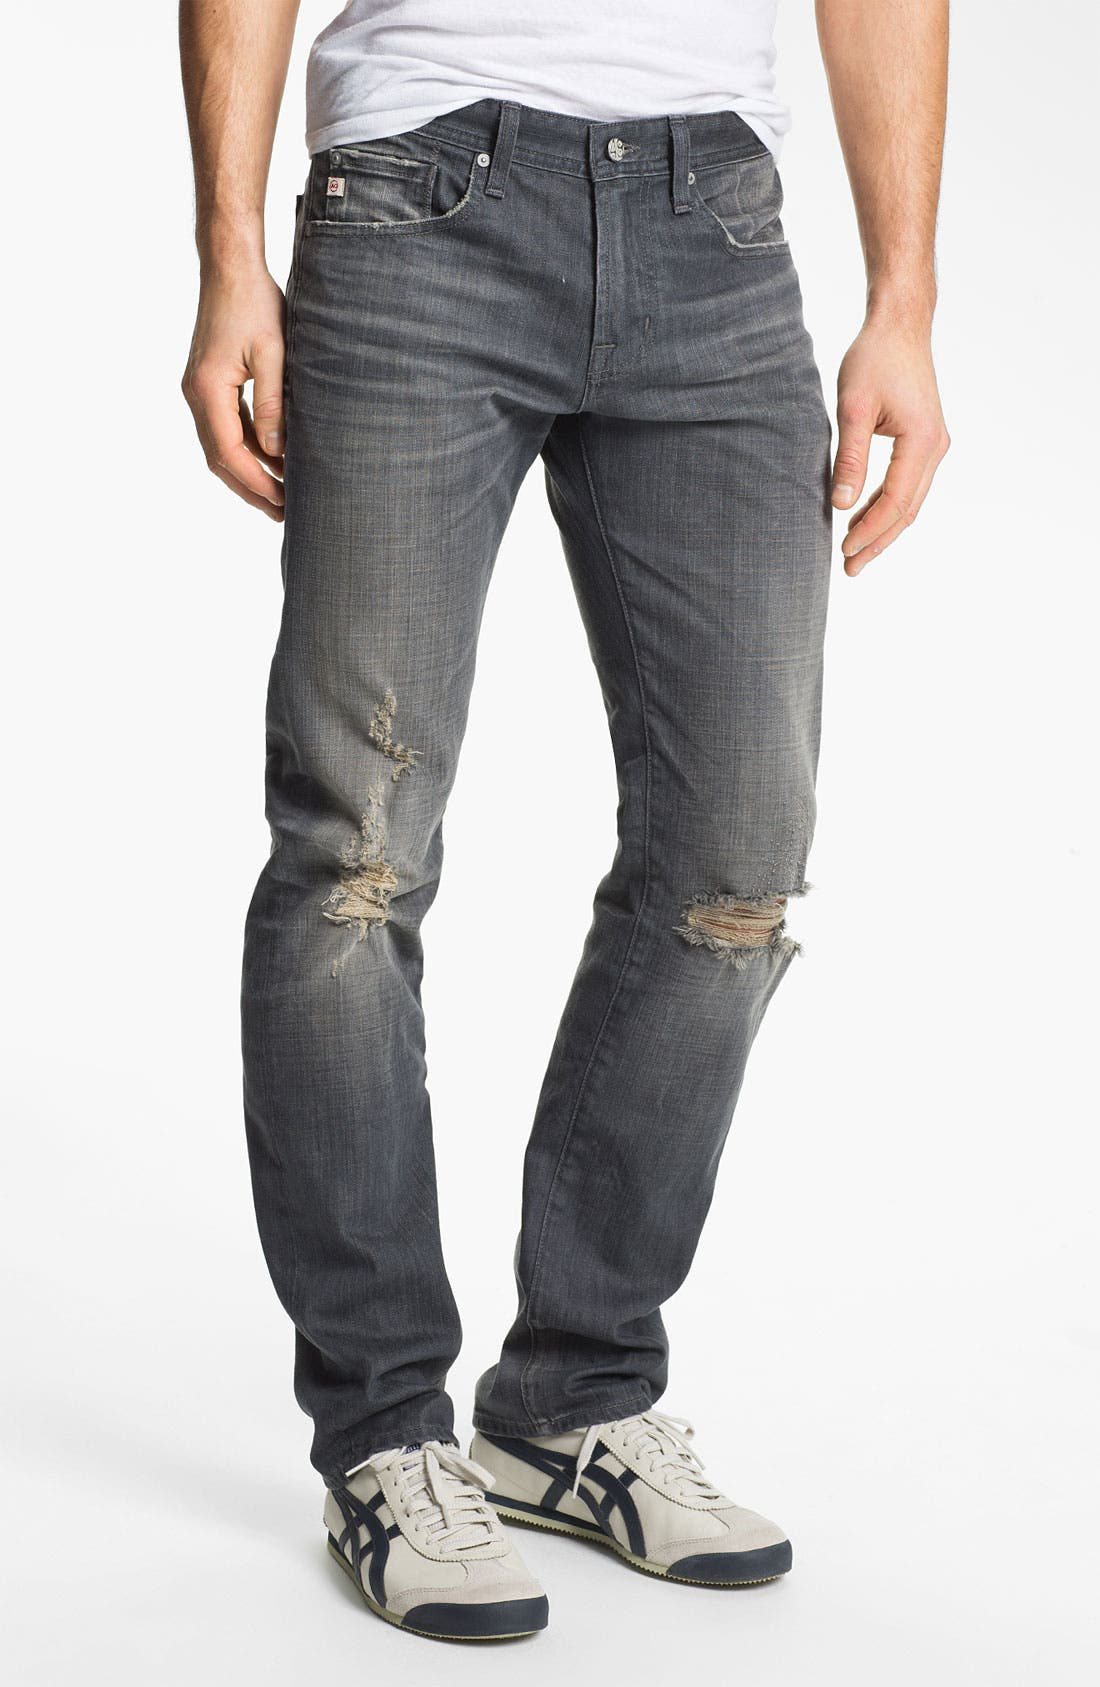 Alternate Image 1 Selected - AG 'Matchbox' Slim Fit Jeans (6 Year Destroyed)